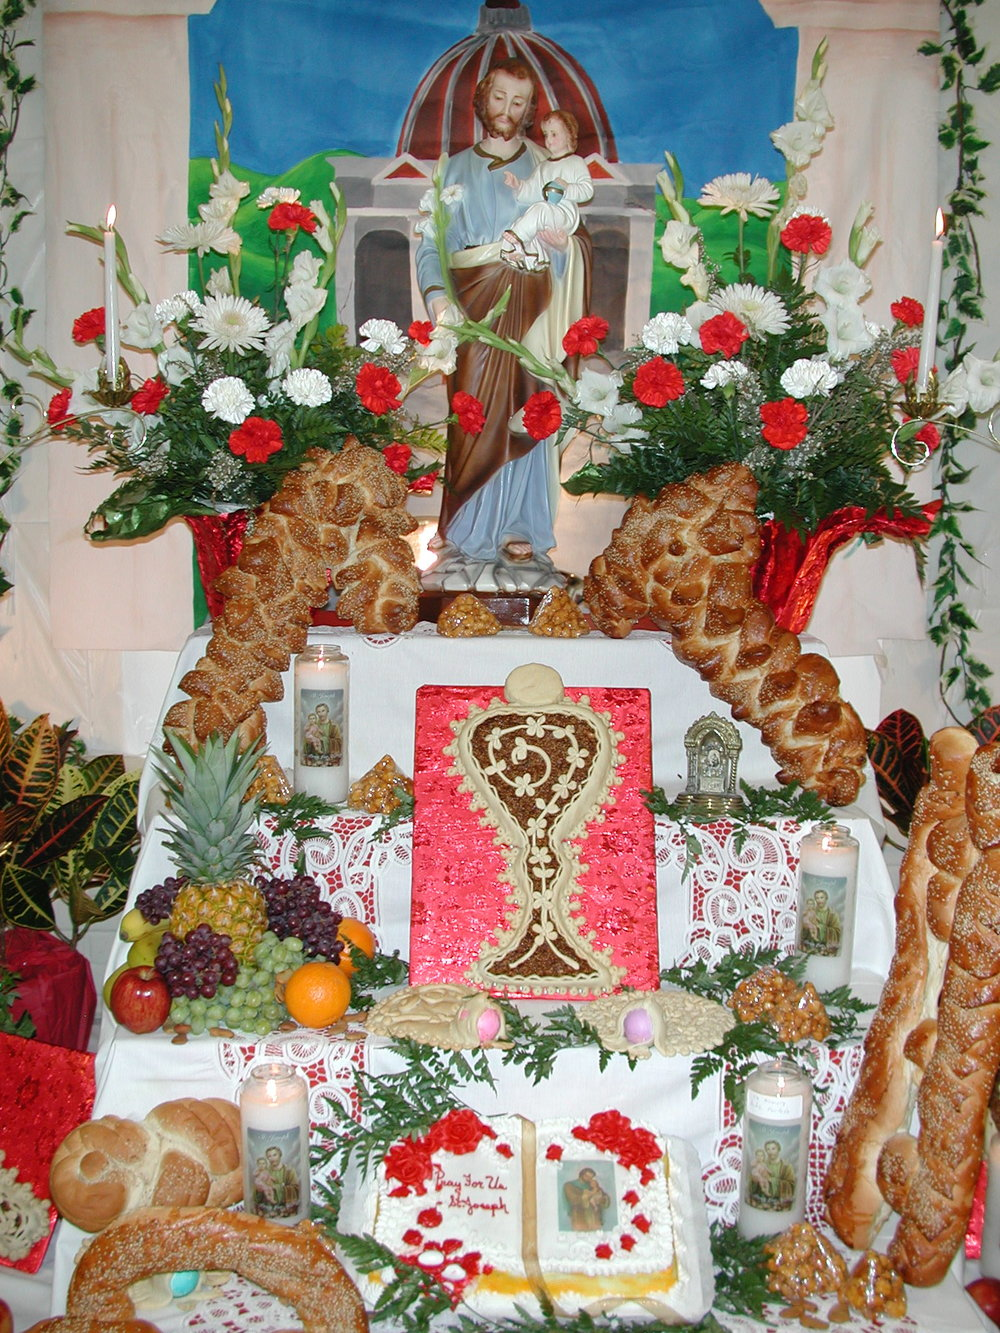 A Saint Joseph's Day altar in New Orleans, LA